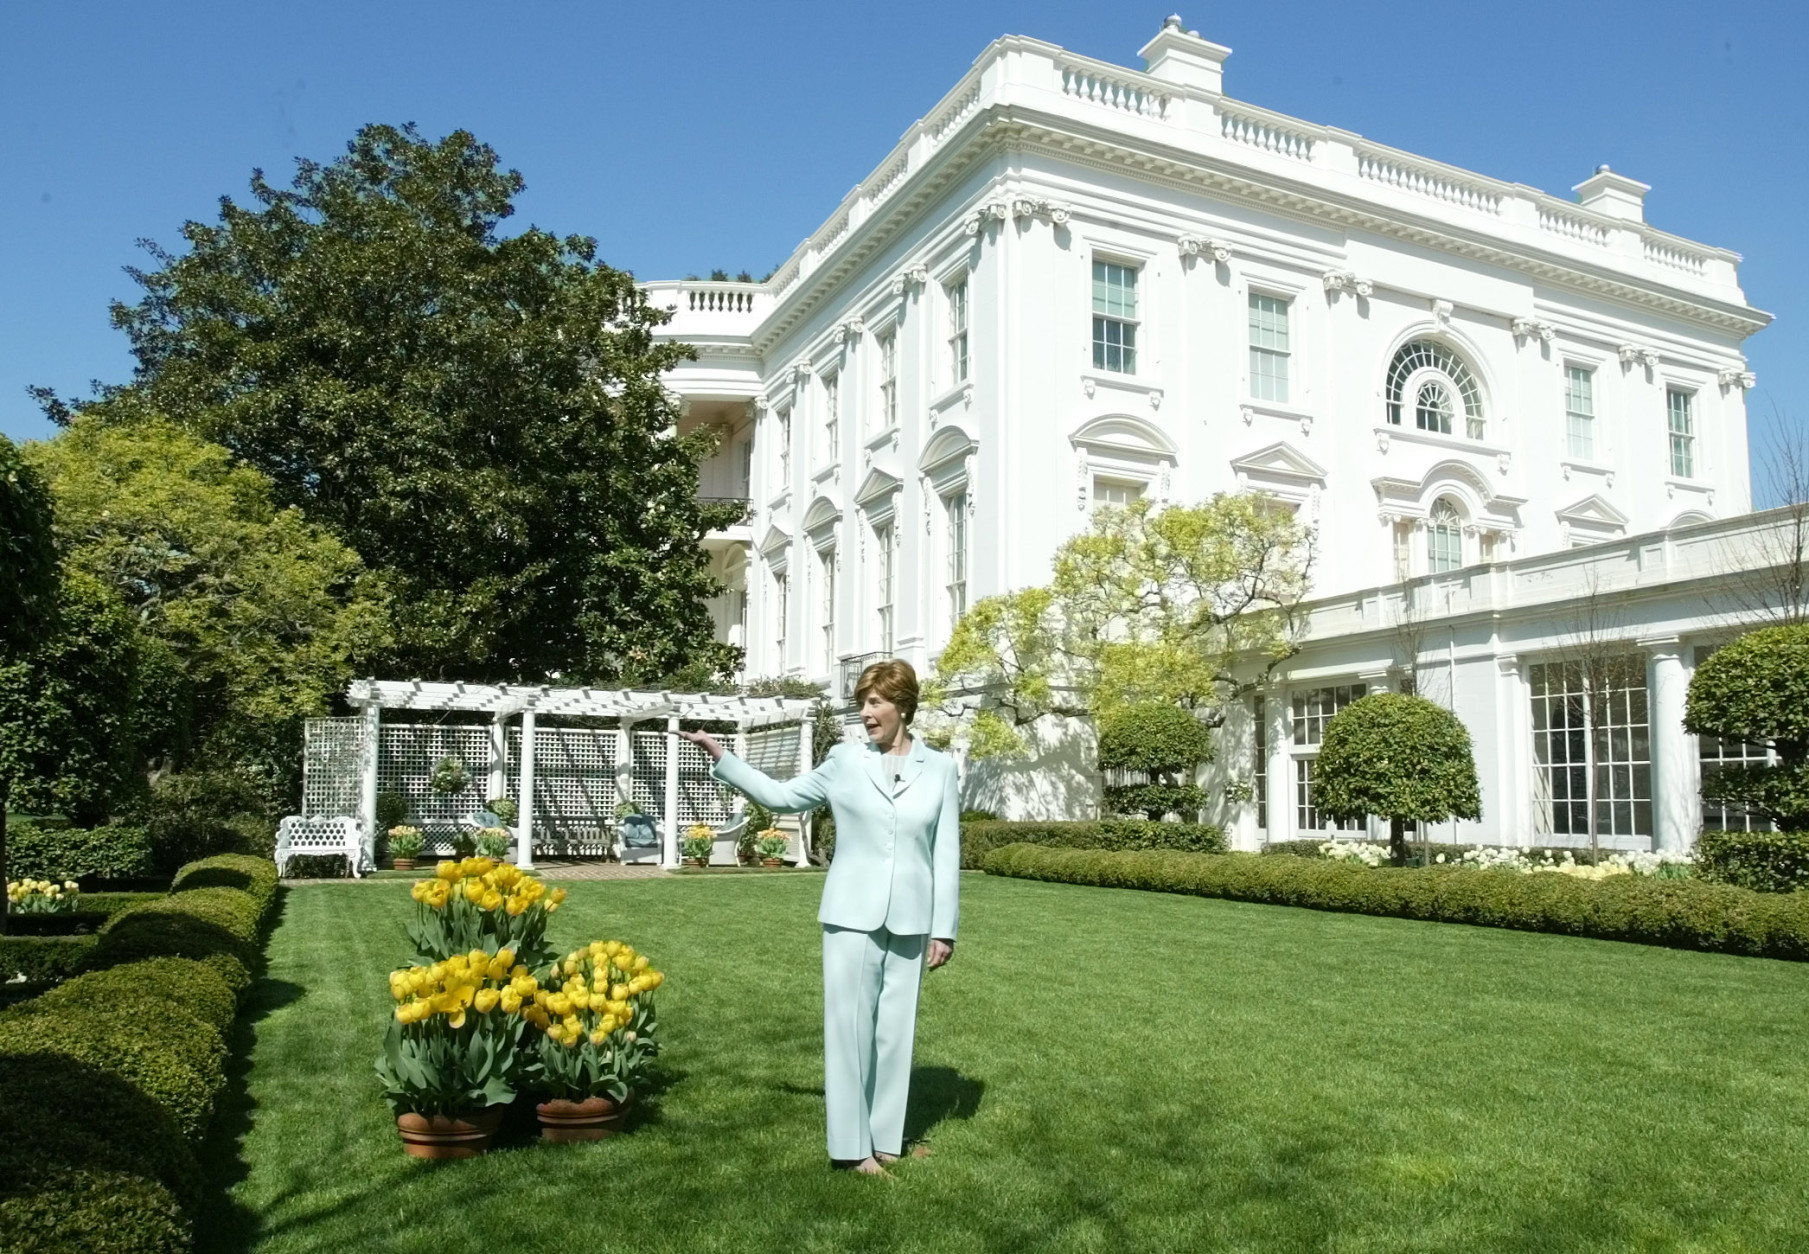 First lady Laura Bush gives a tour of the Jacqueline Kennedy Garden at the White House for members of the media Friday, April 16, 2004 in Washngton. (AP Photo/Manuel Balce Ceneta)